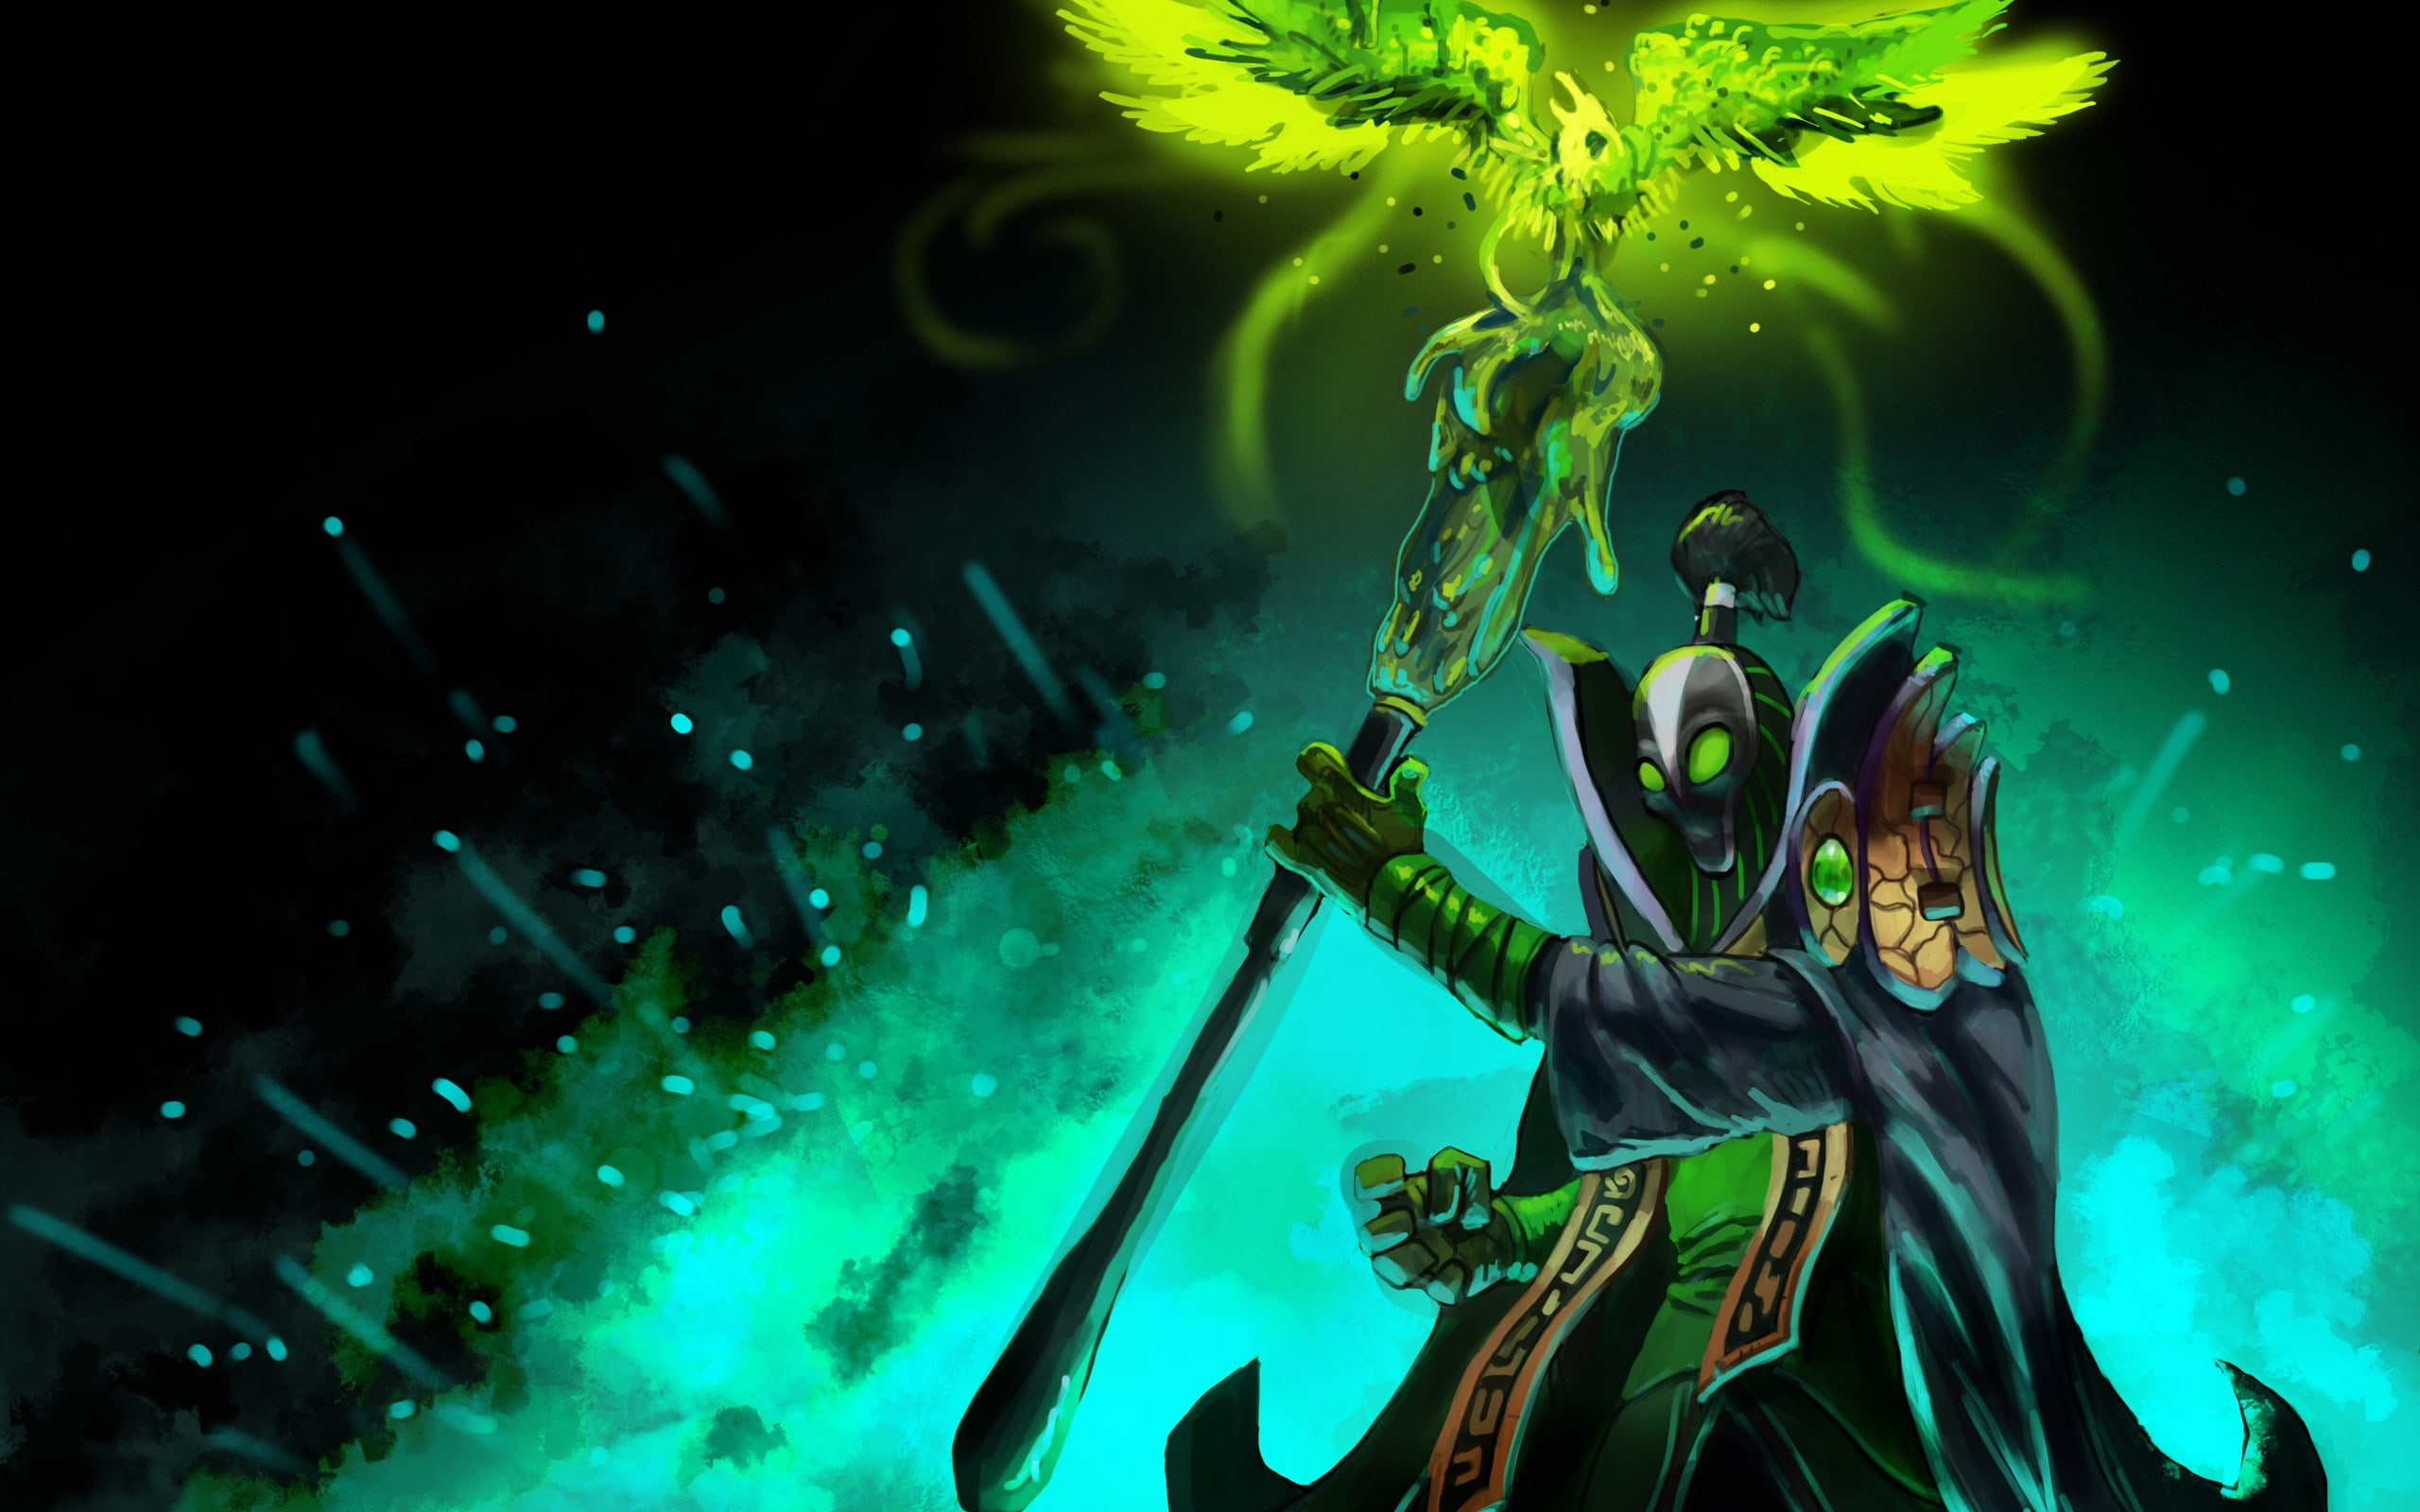 dota2 rubick hd desktop wallpapers 7wallpapers net